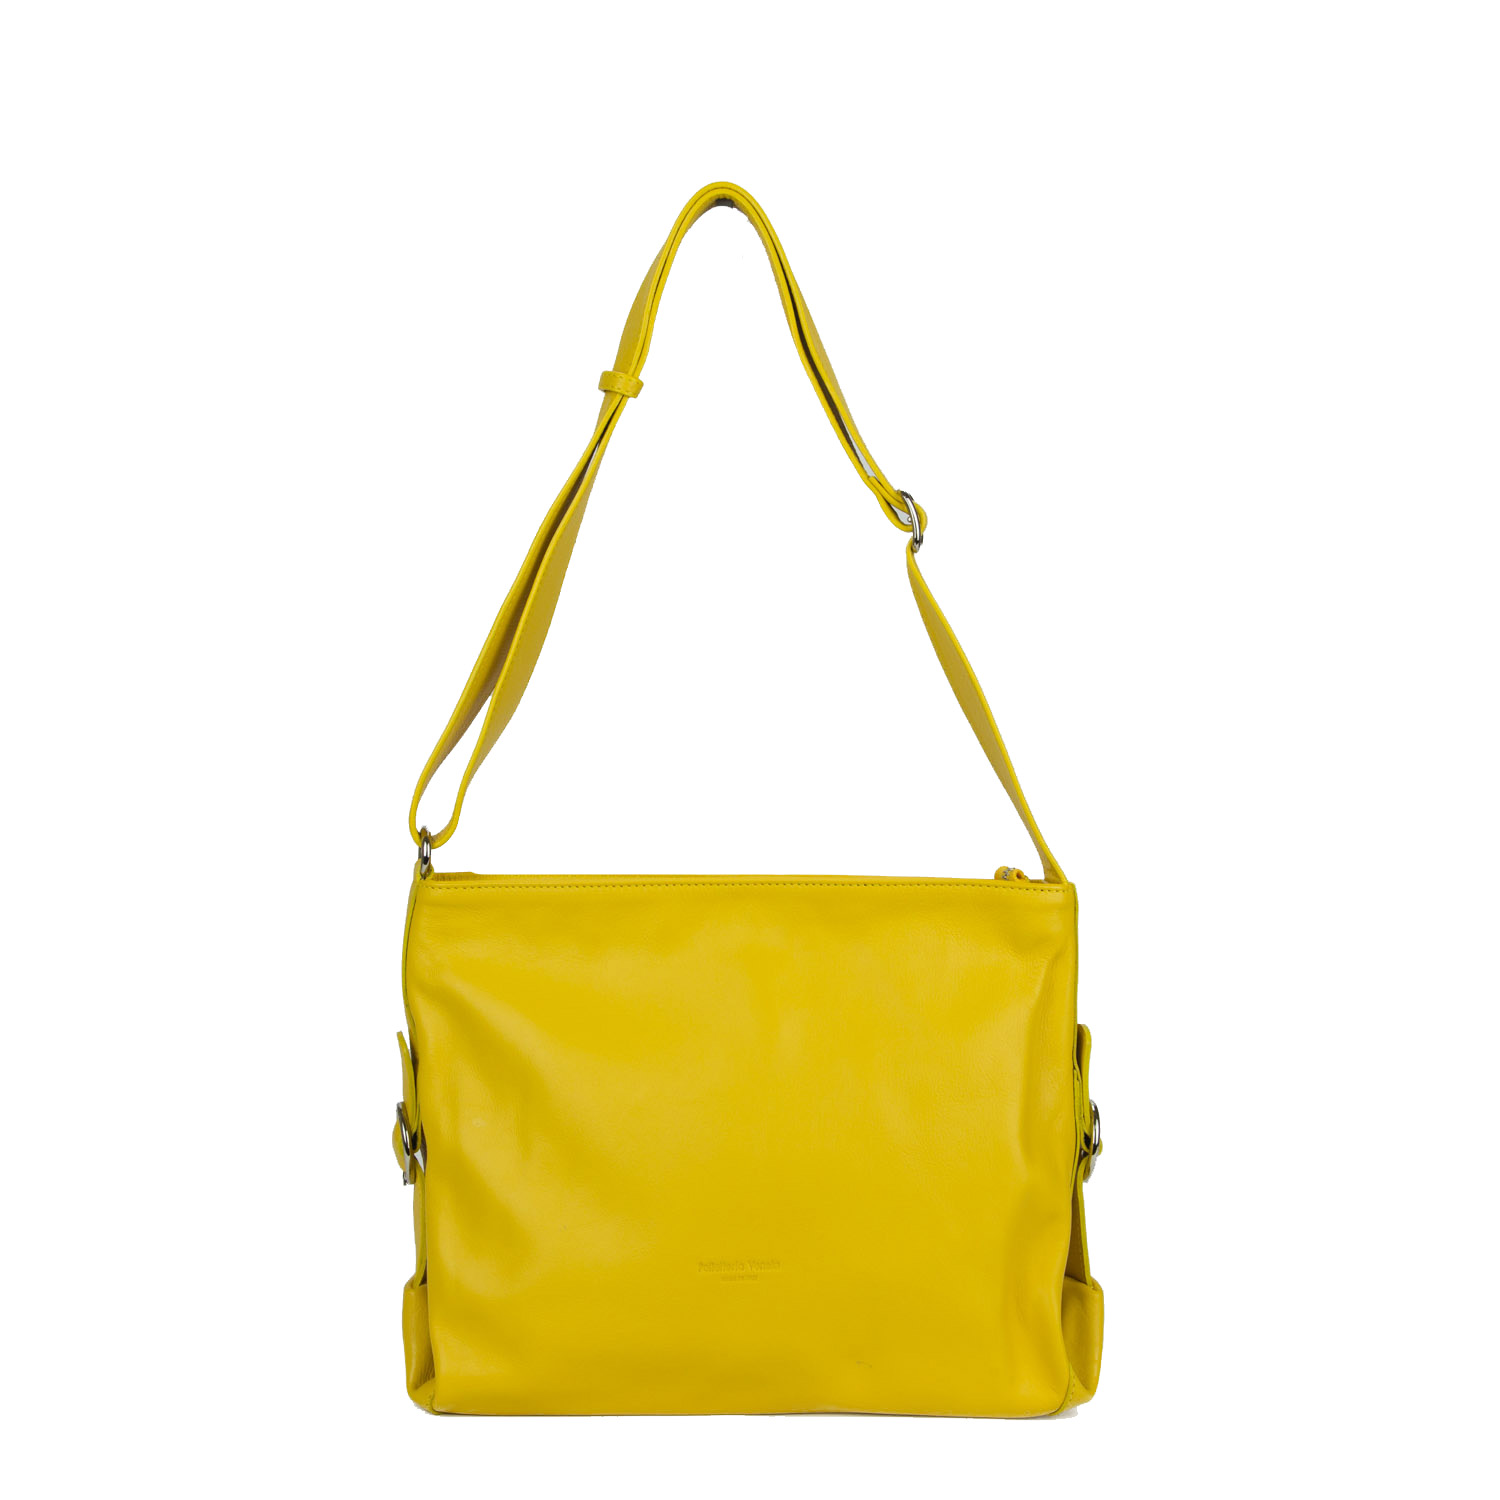 Bolso Veneta crossbody ajustable amarillo